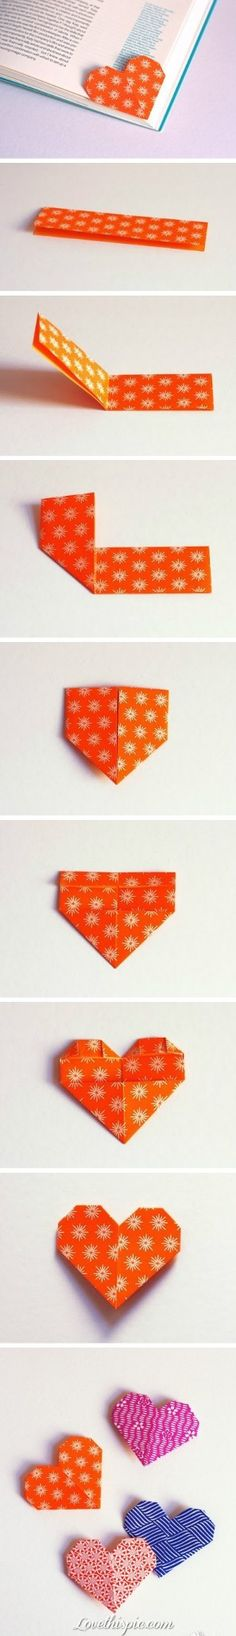 DIY Heart Bookmarks Pictures, Photos, and Images for Facebook, Tumblr, Pinterest, and Twitter More